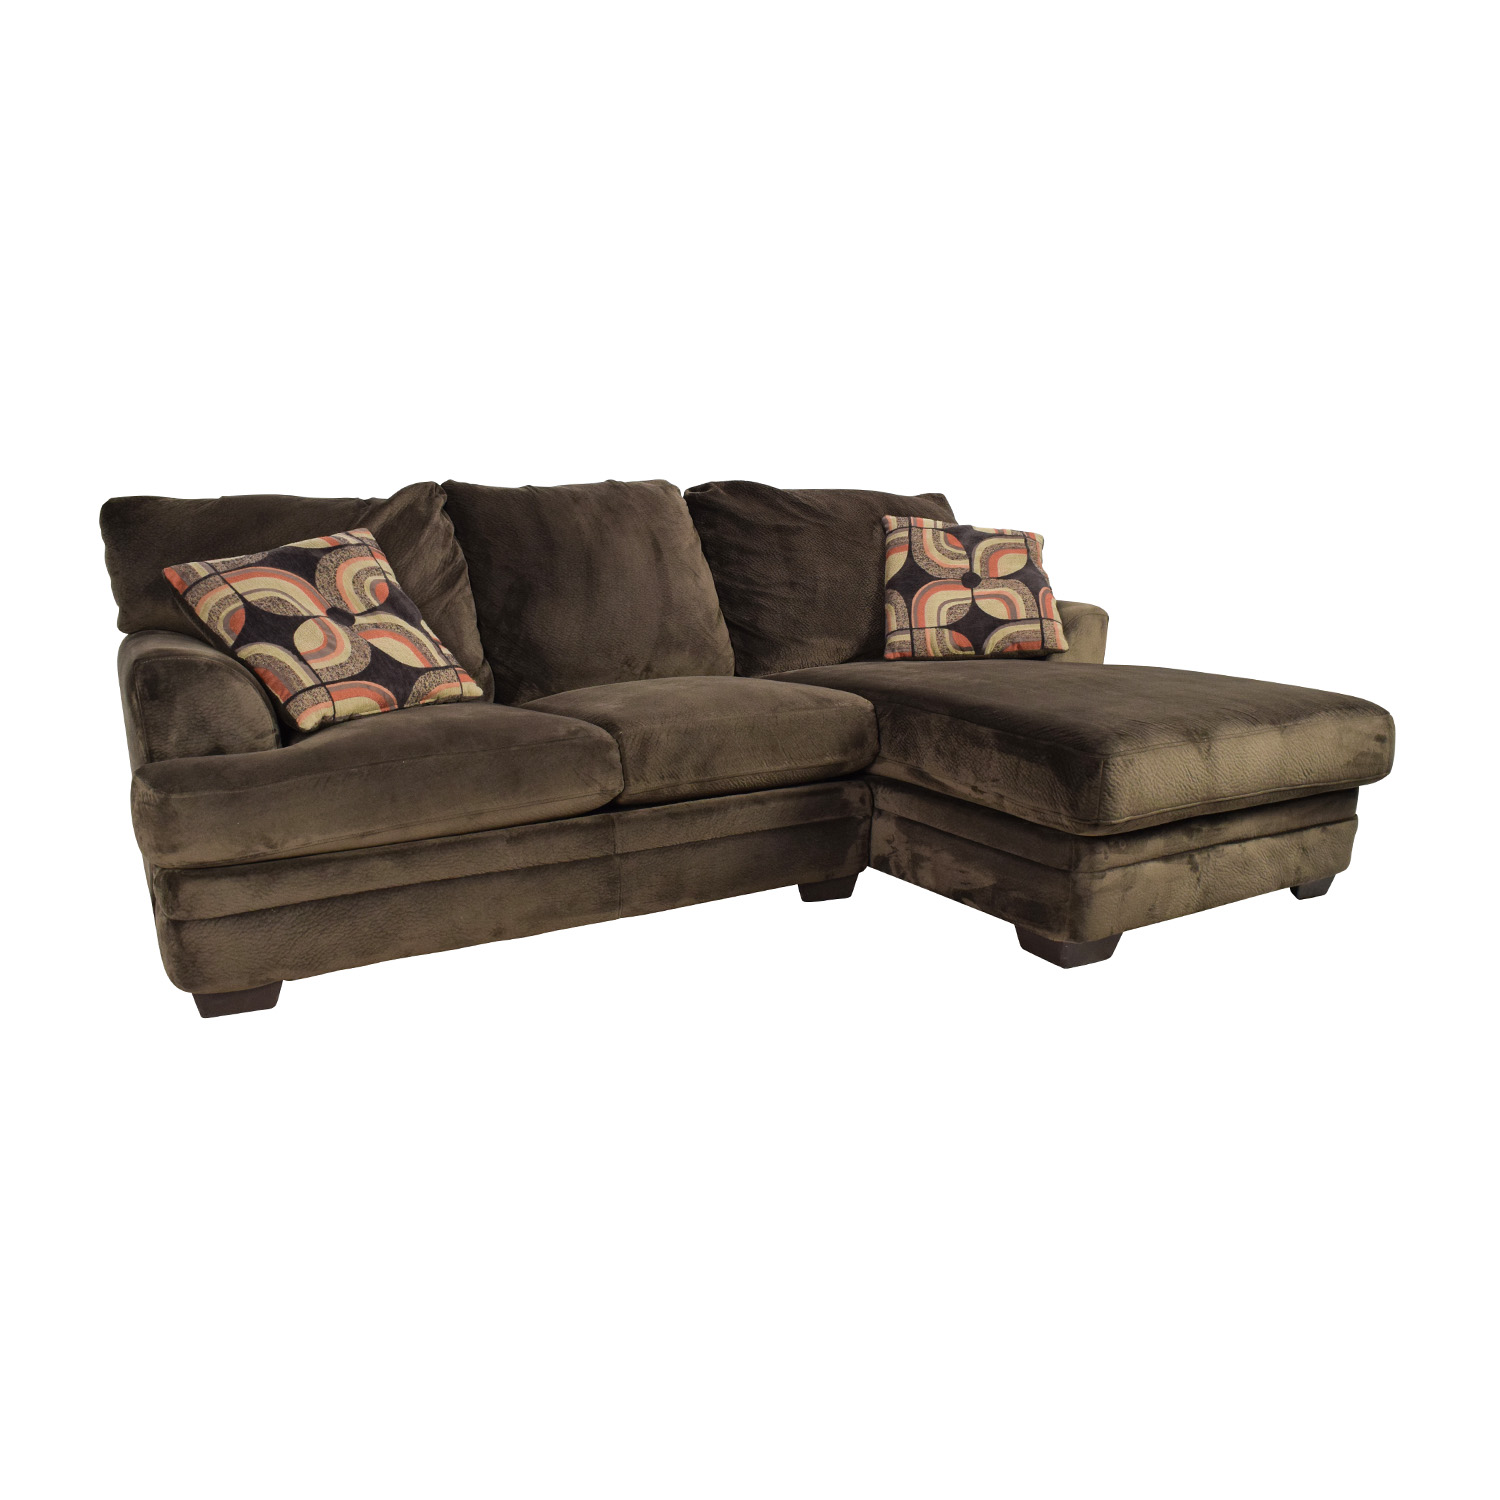 with brown kendall price storage bobs ii sofa s off bob furniture